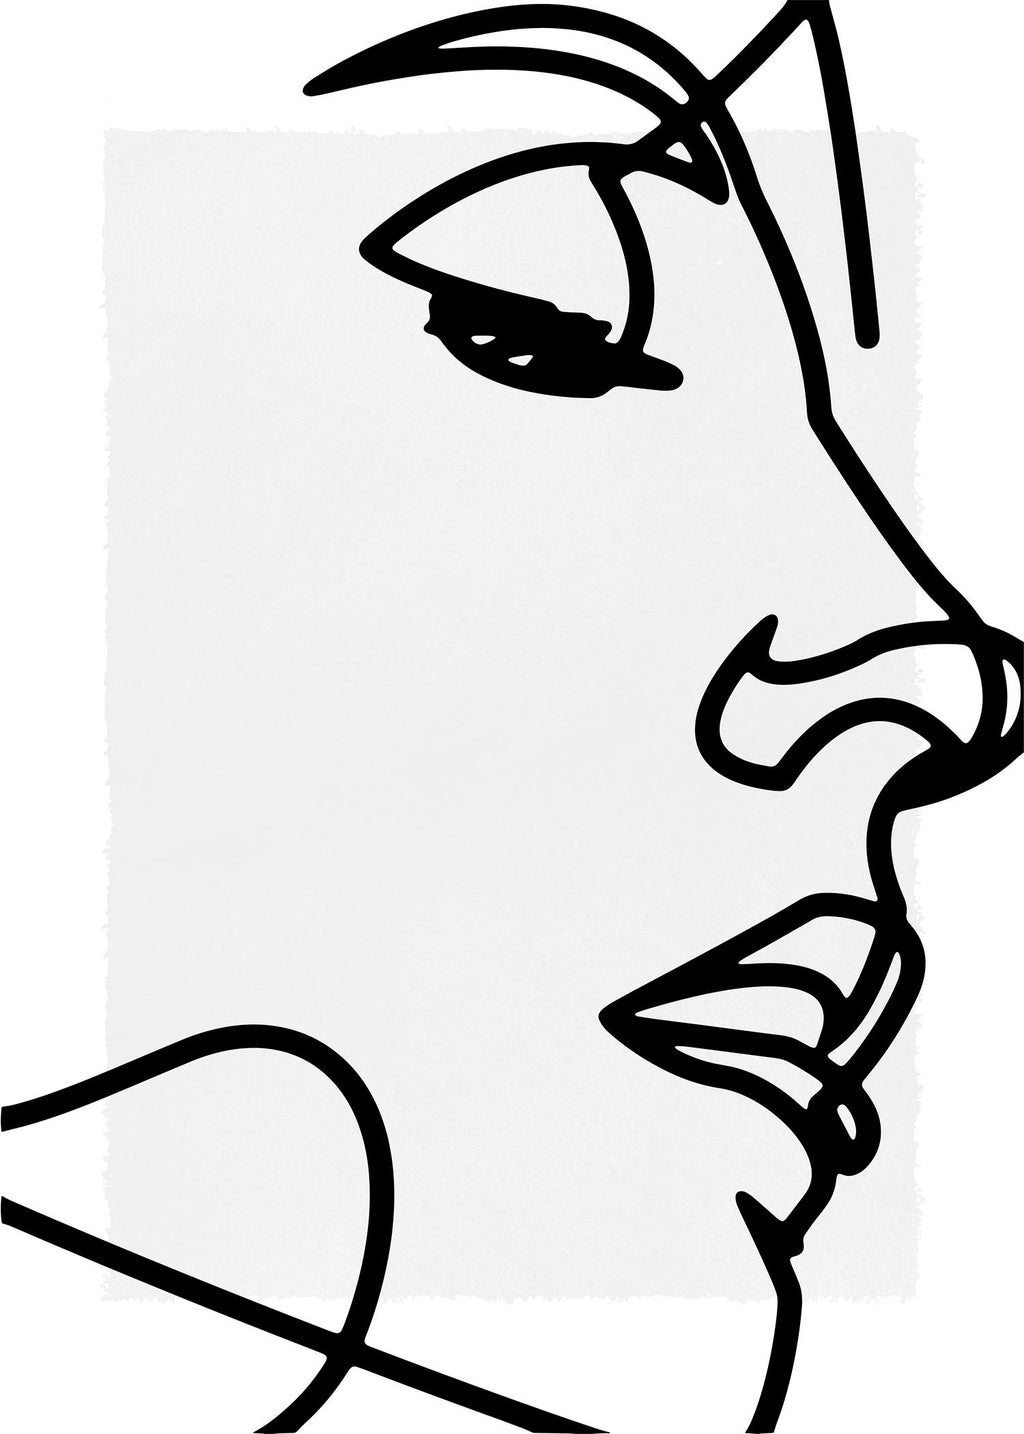 Face Close Up Line Art Print